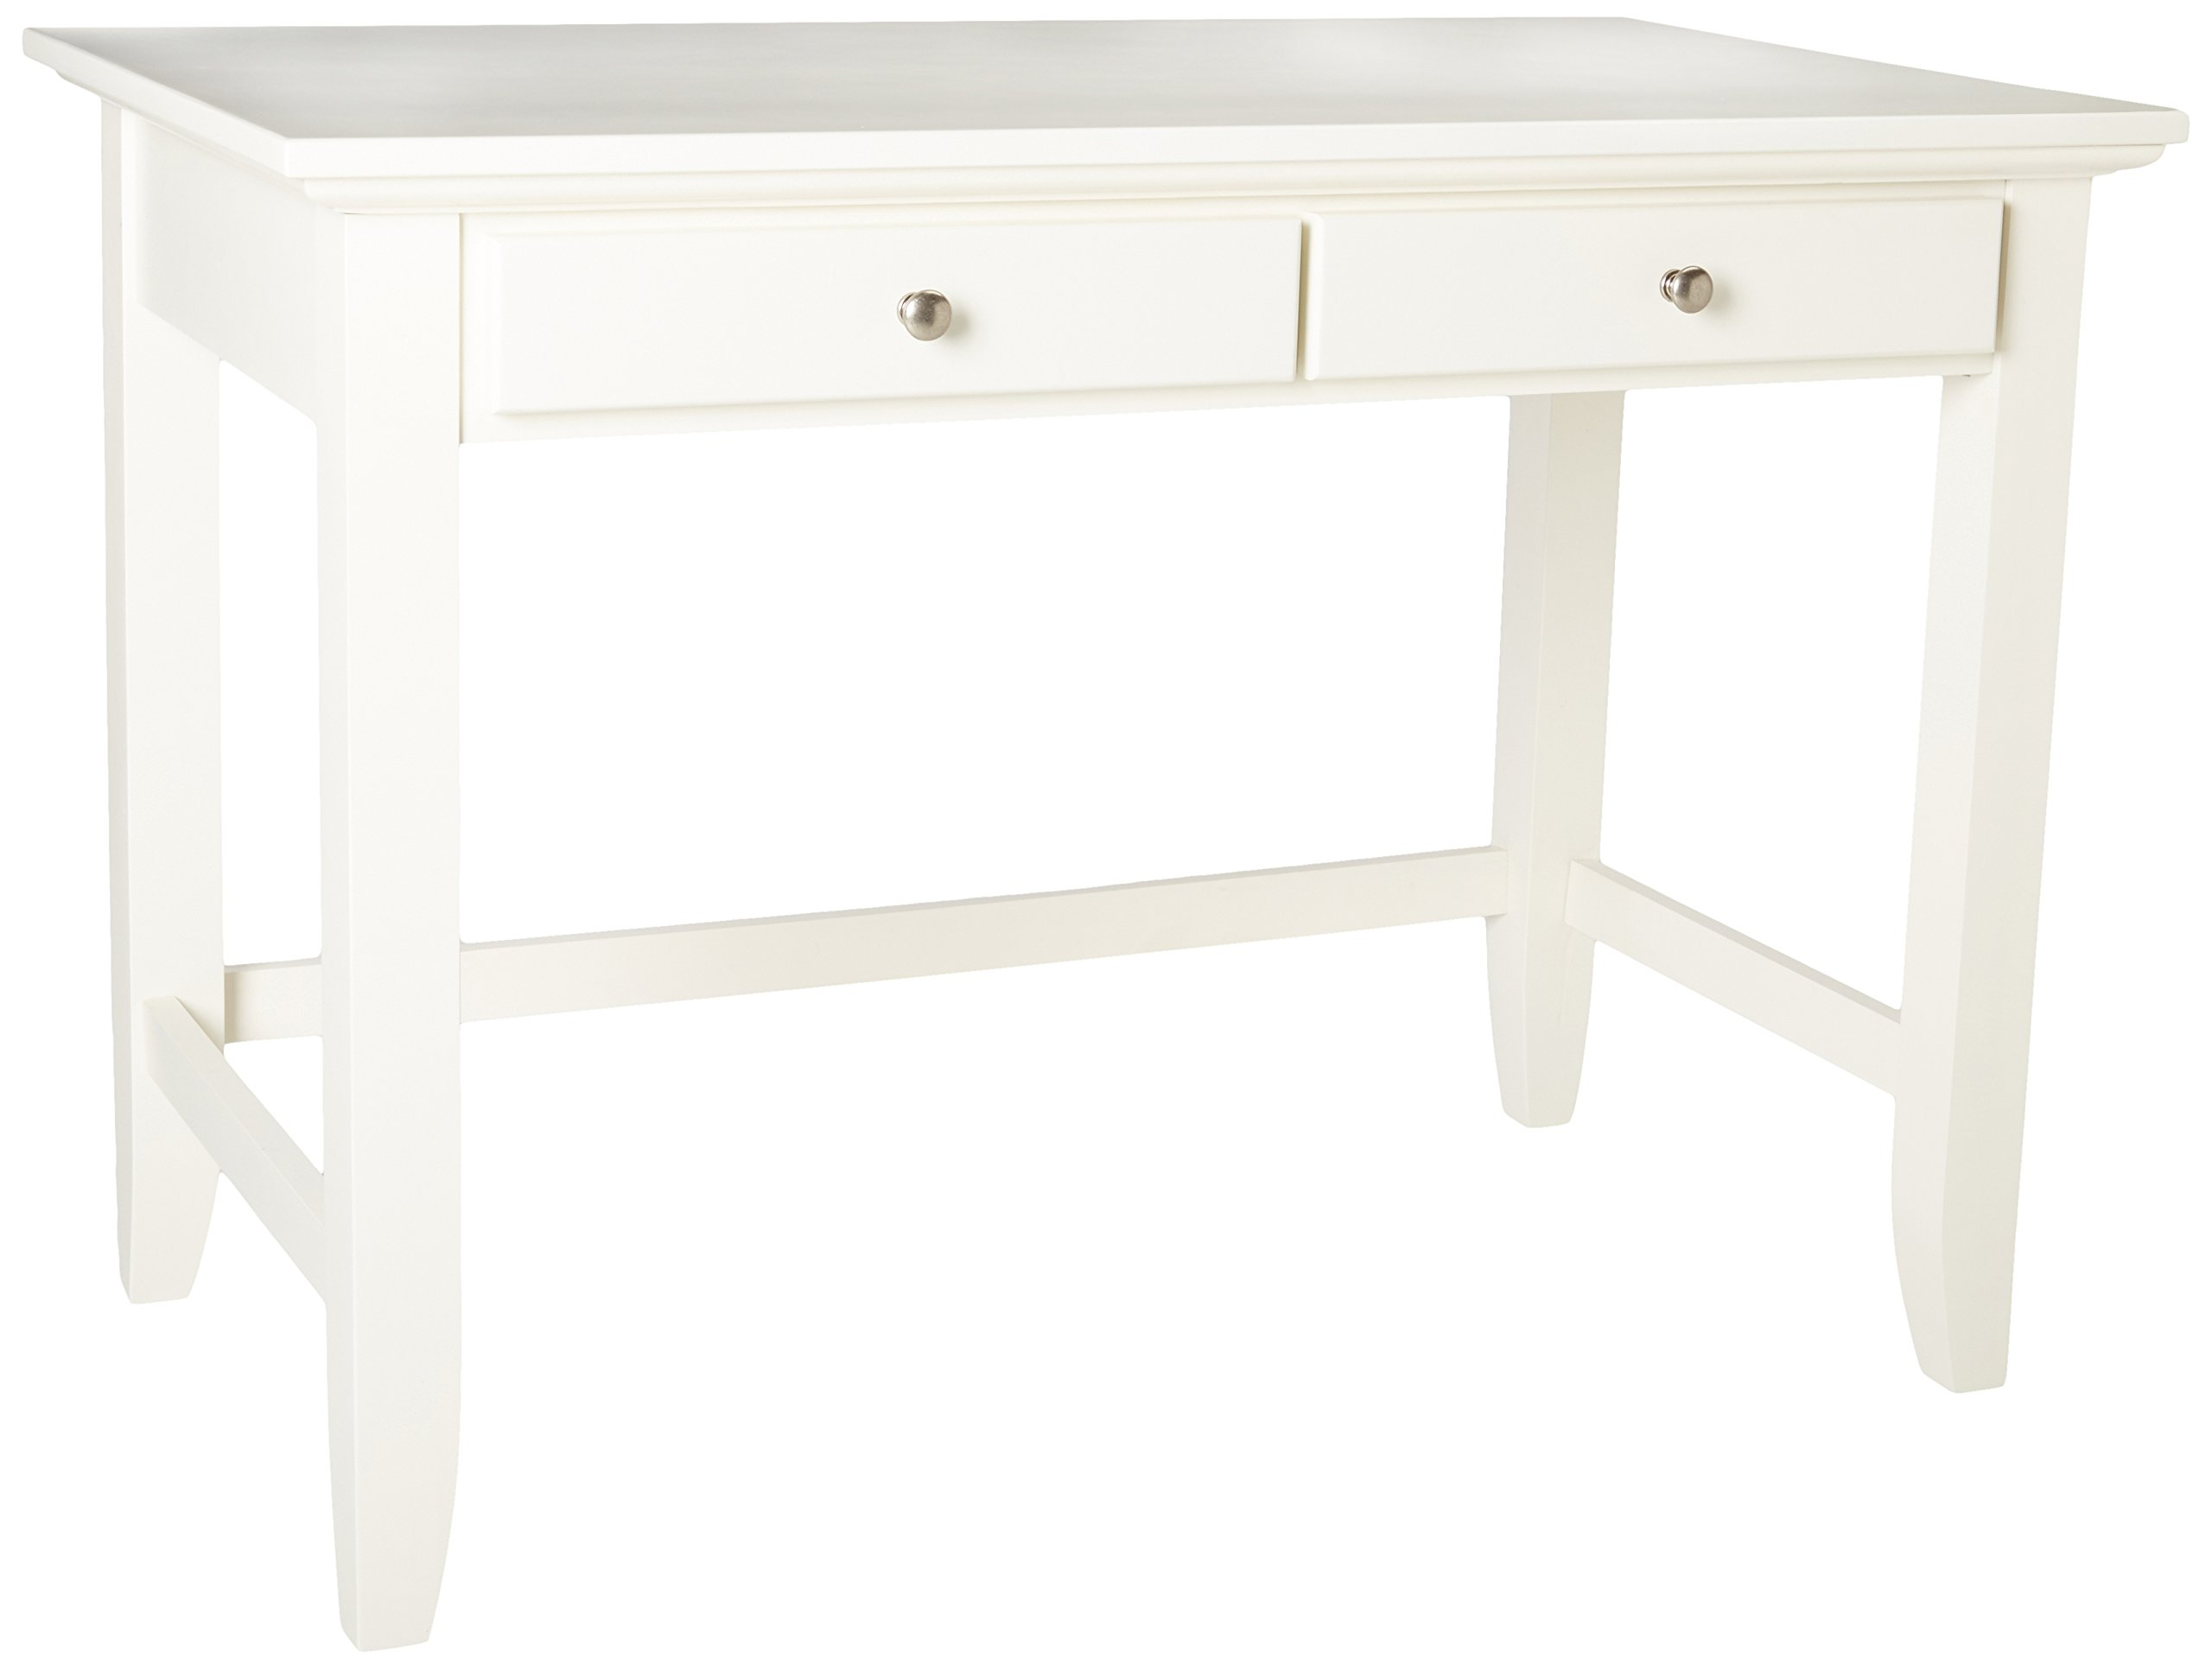 Home Styles 5530-16 Naples Student Desk, White Finish by Home Styles